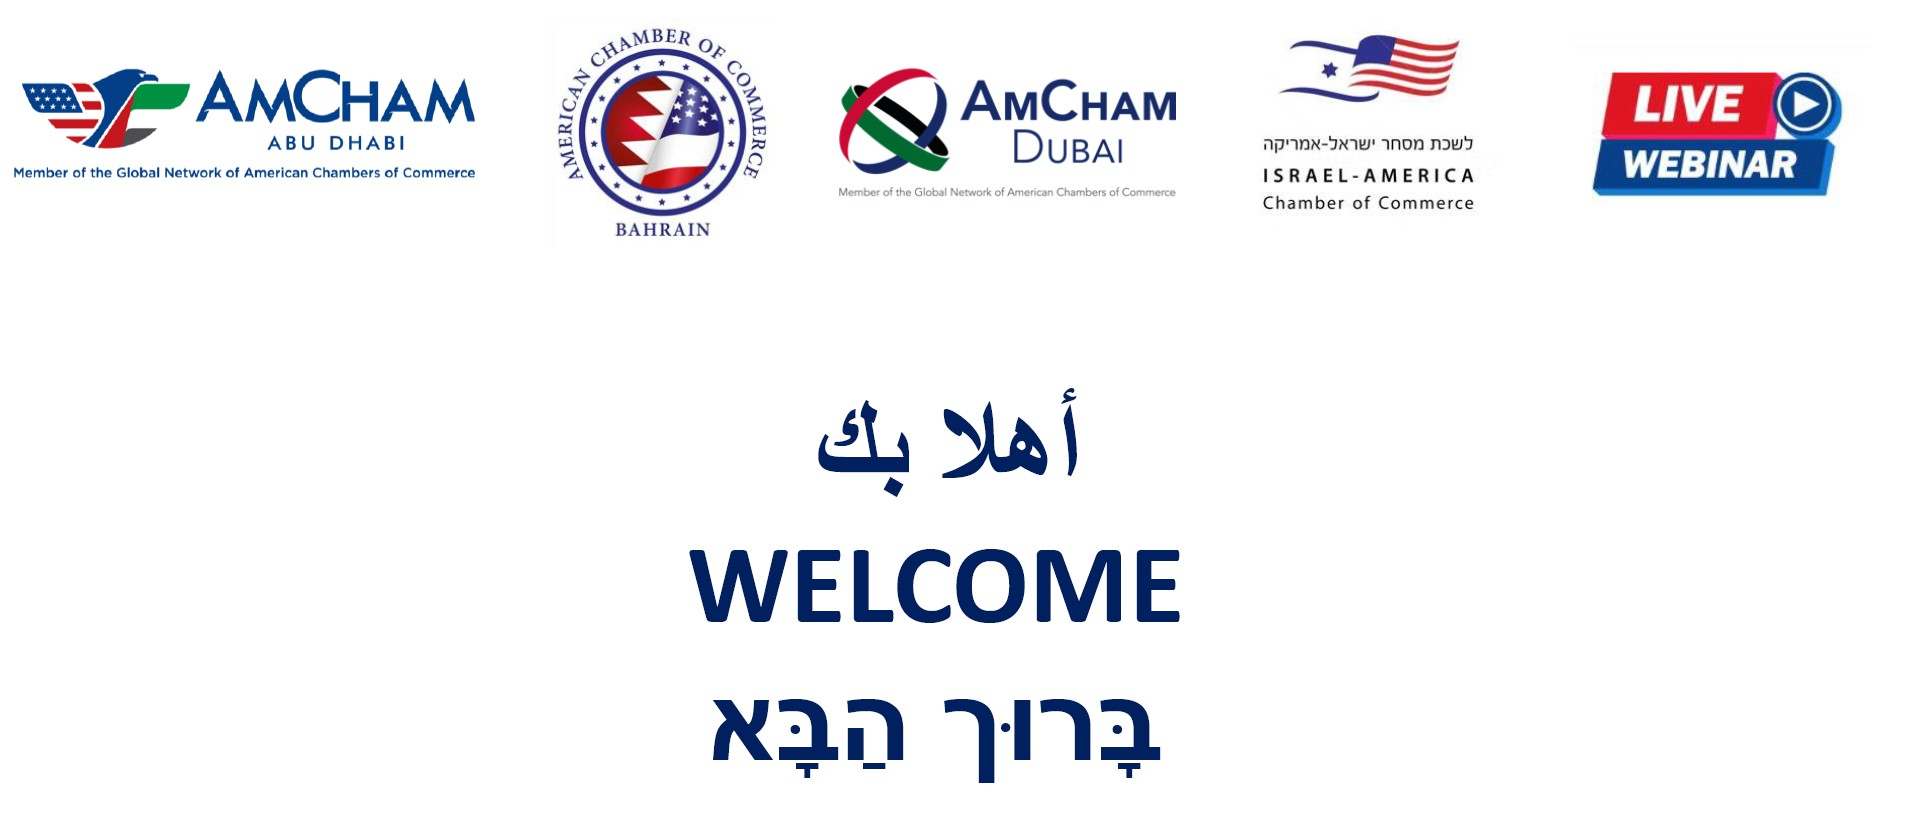 Special Joint 4-Amcham Boards Meeting: Abu Dhabi, Dubai, Bahrain and Israel